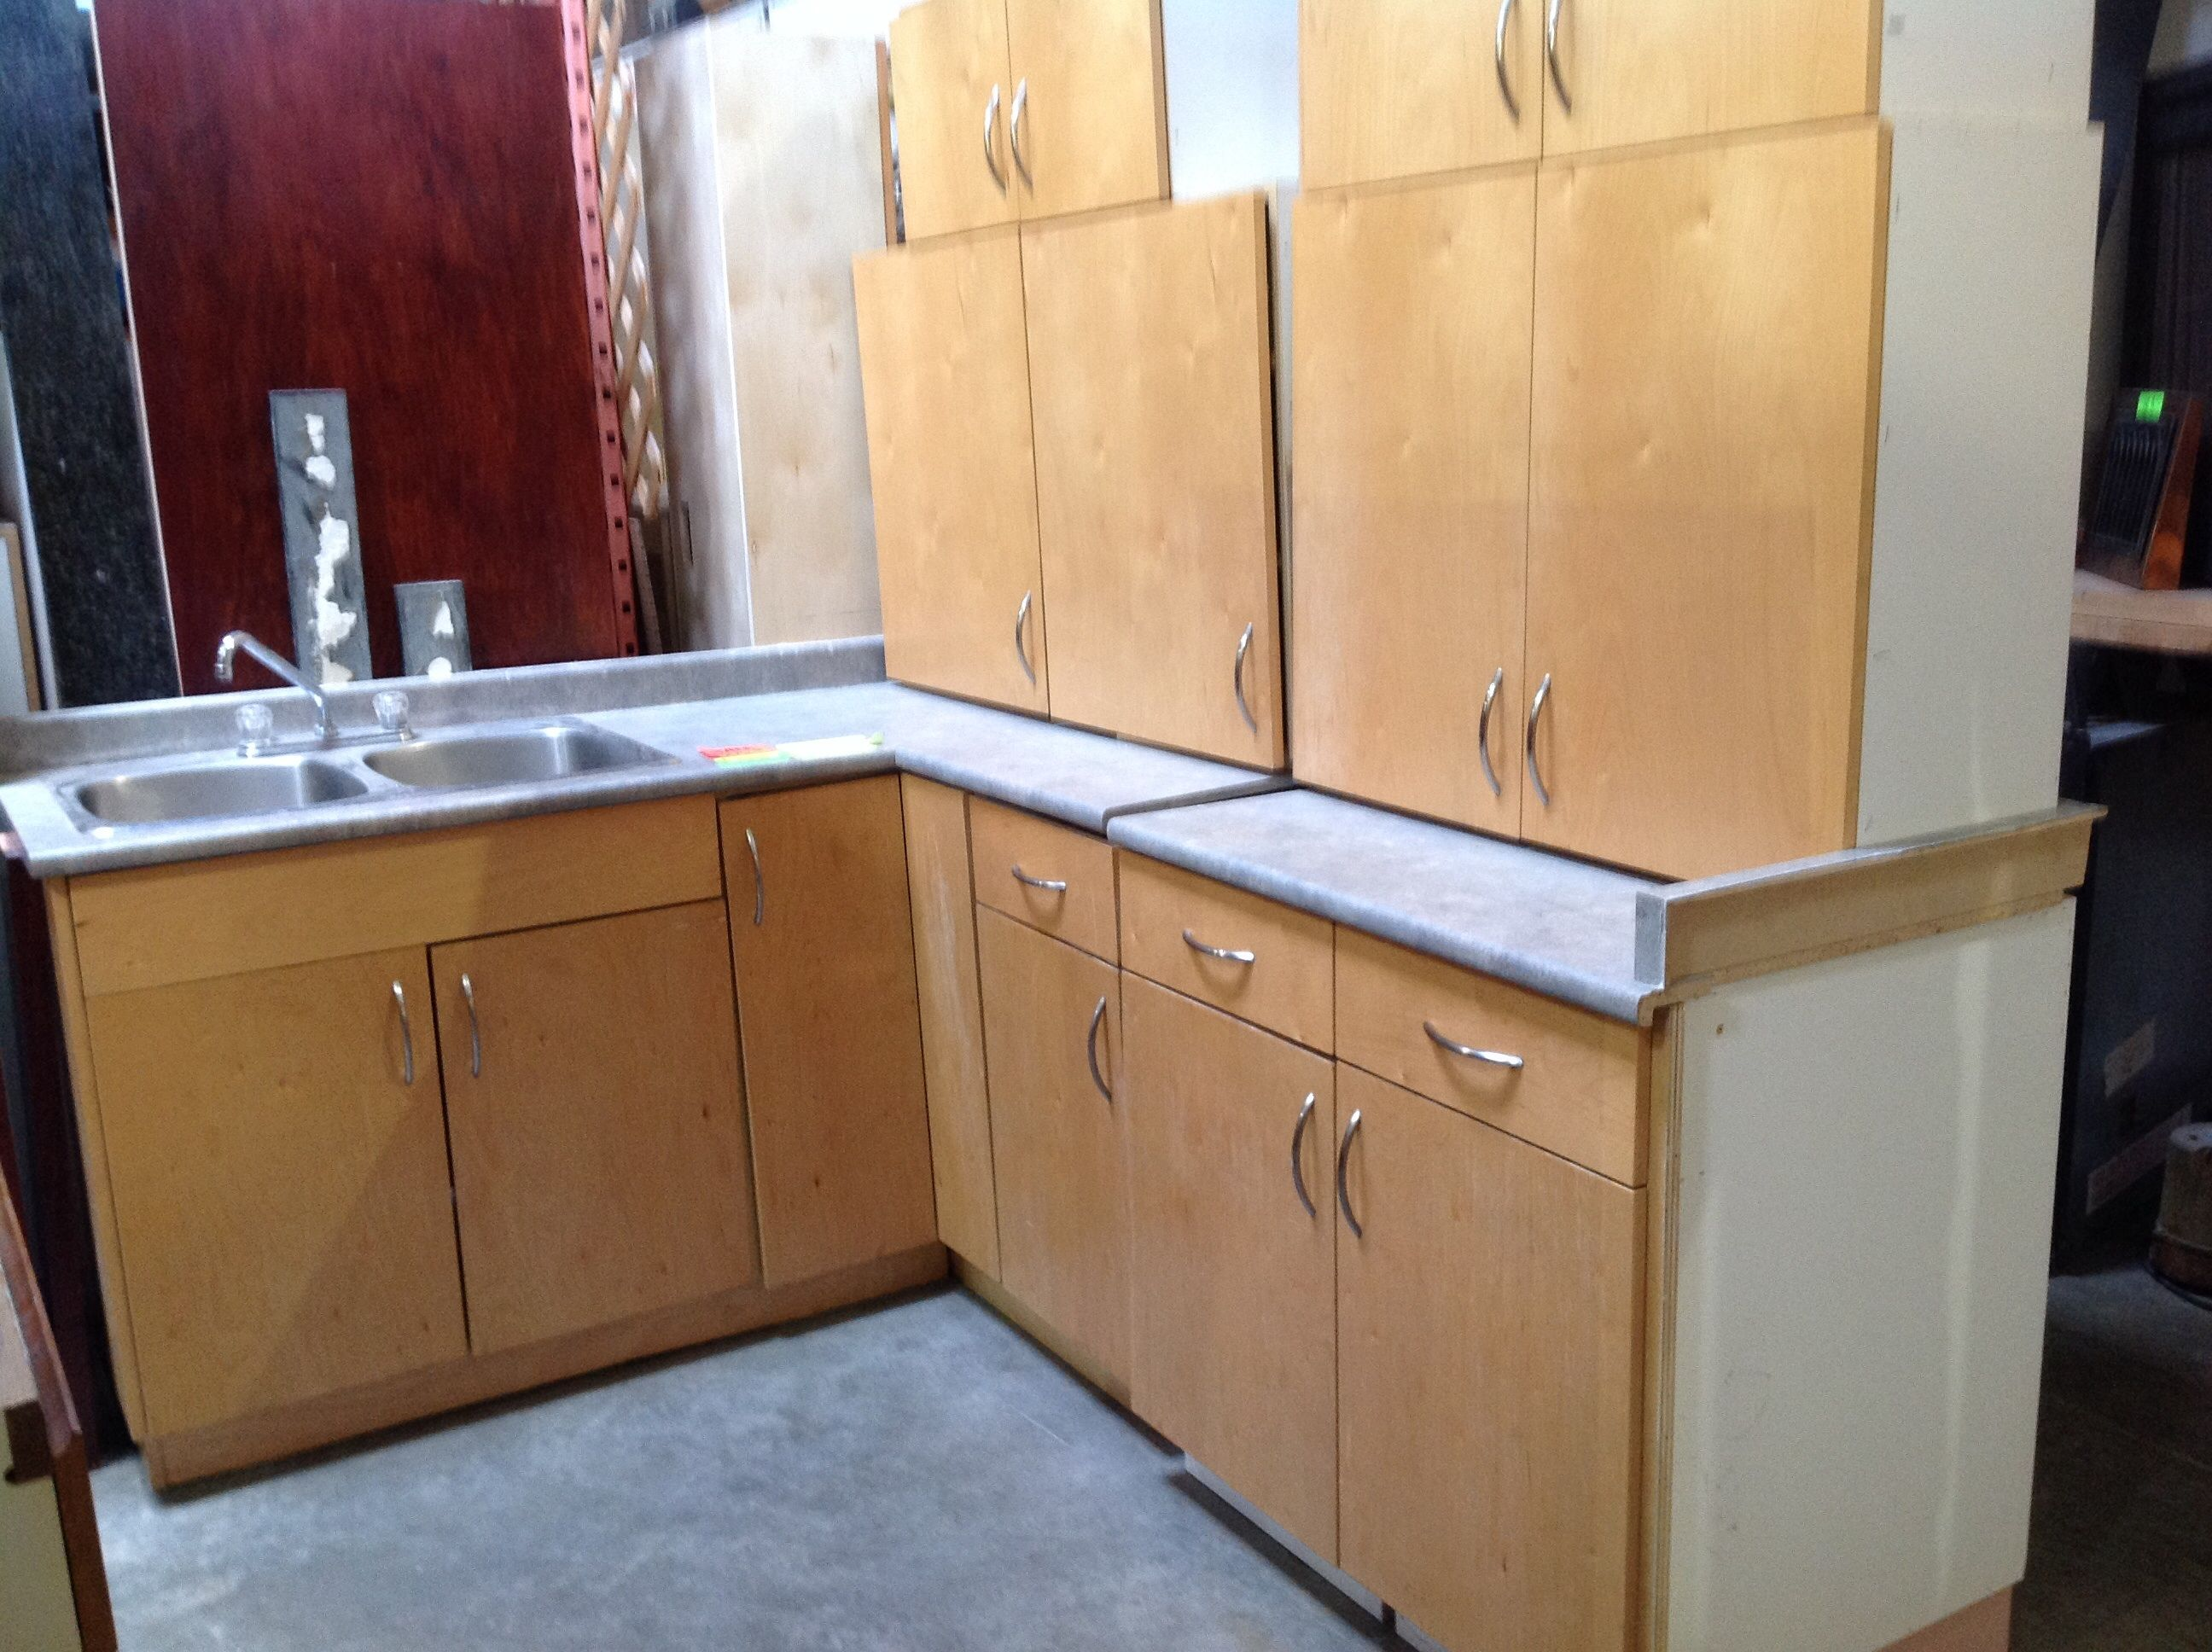 Used Kitchen Cabinets Chilliwack New And Used Building Materials Inc Used Kitchen Cabinets Kitchen Cabinets Window Handles